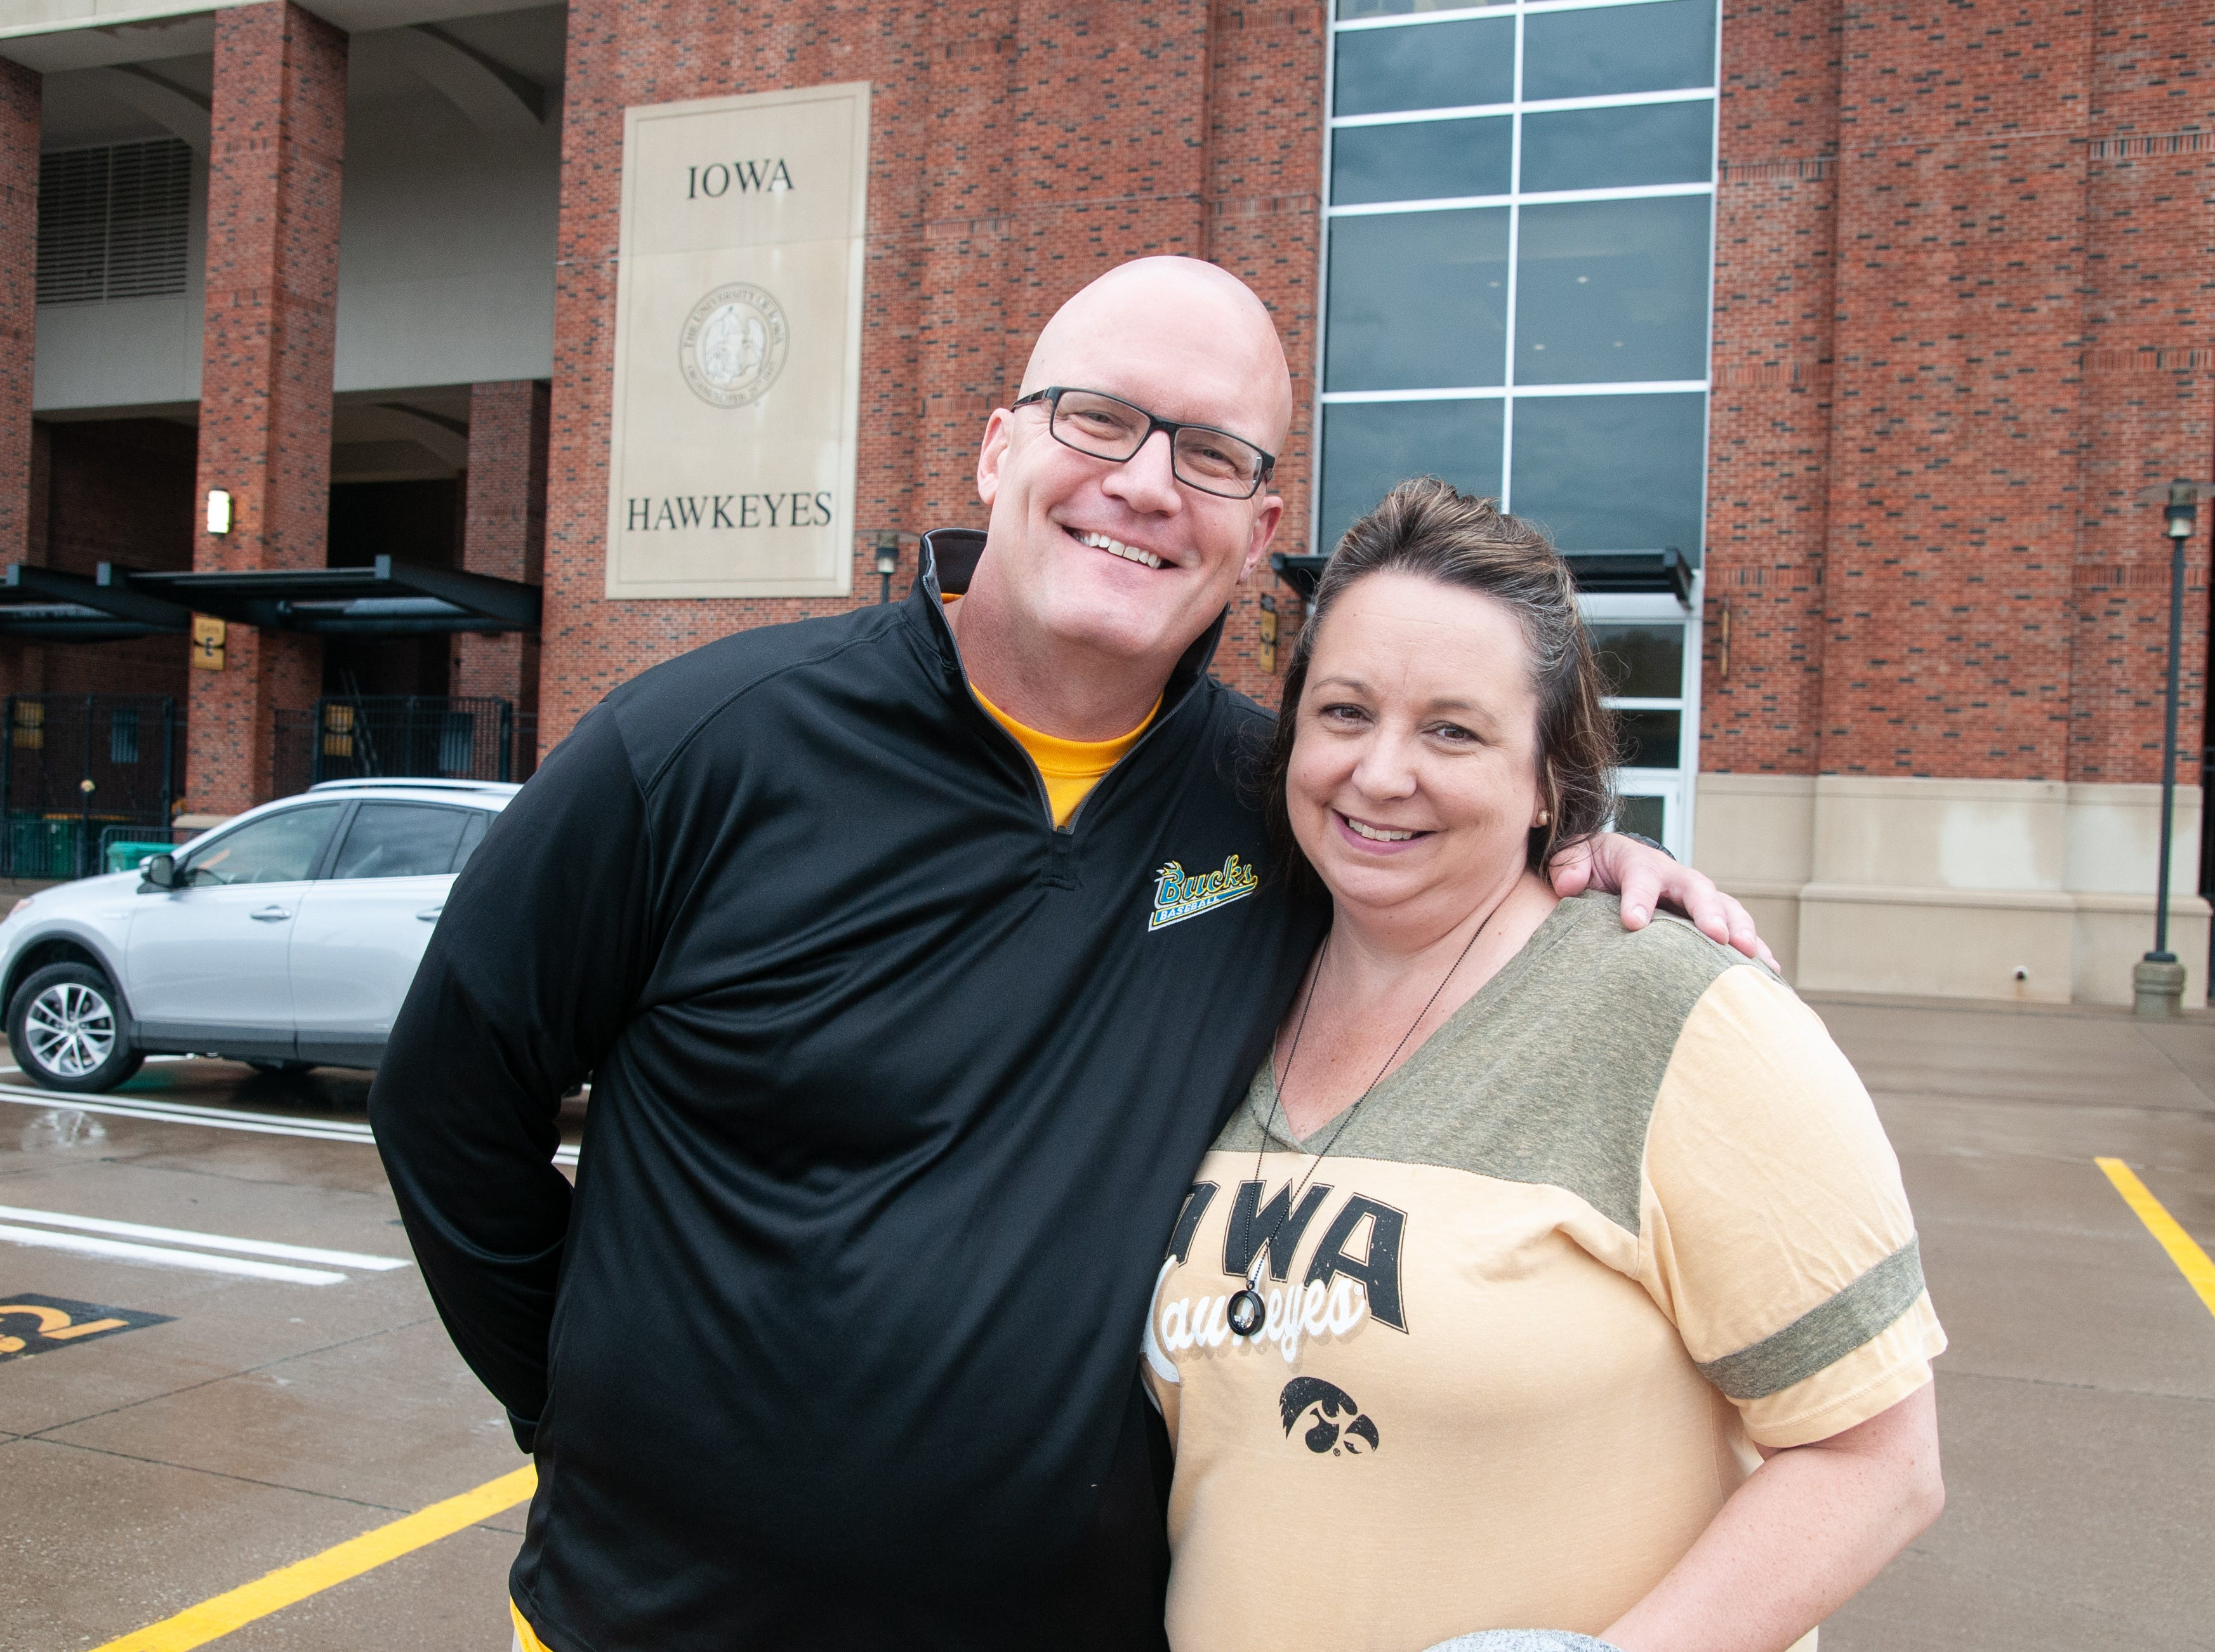 Chad Hammar, 46, (left), and Angie Tracy, 49, of Fort Dodge, Saturday, Sept. 1, 2018, while tailgating before the Iowa game against Northern Illinois in Iowa City.